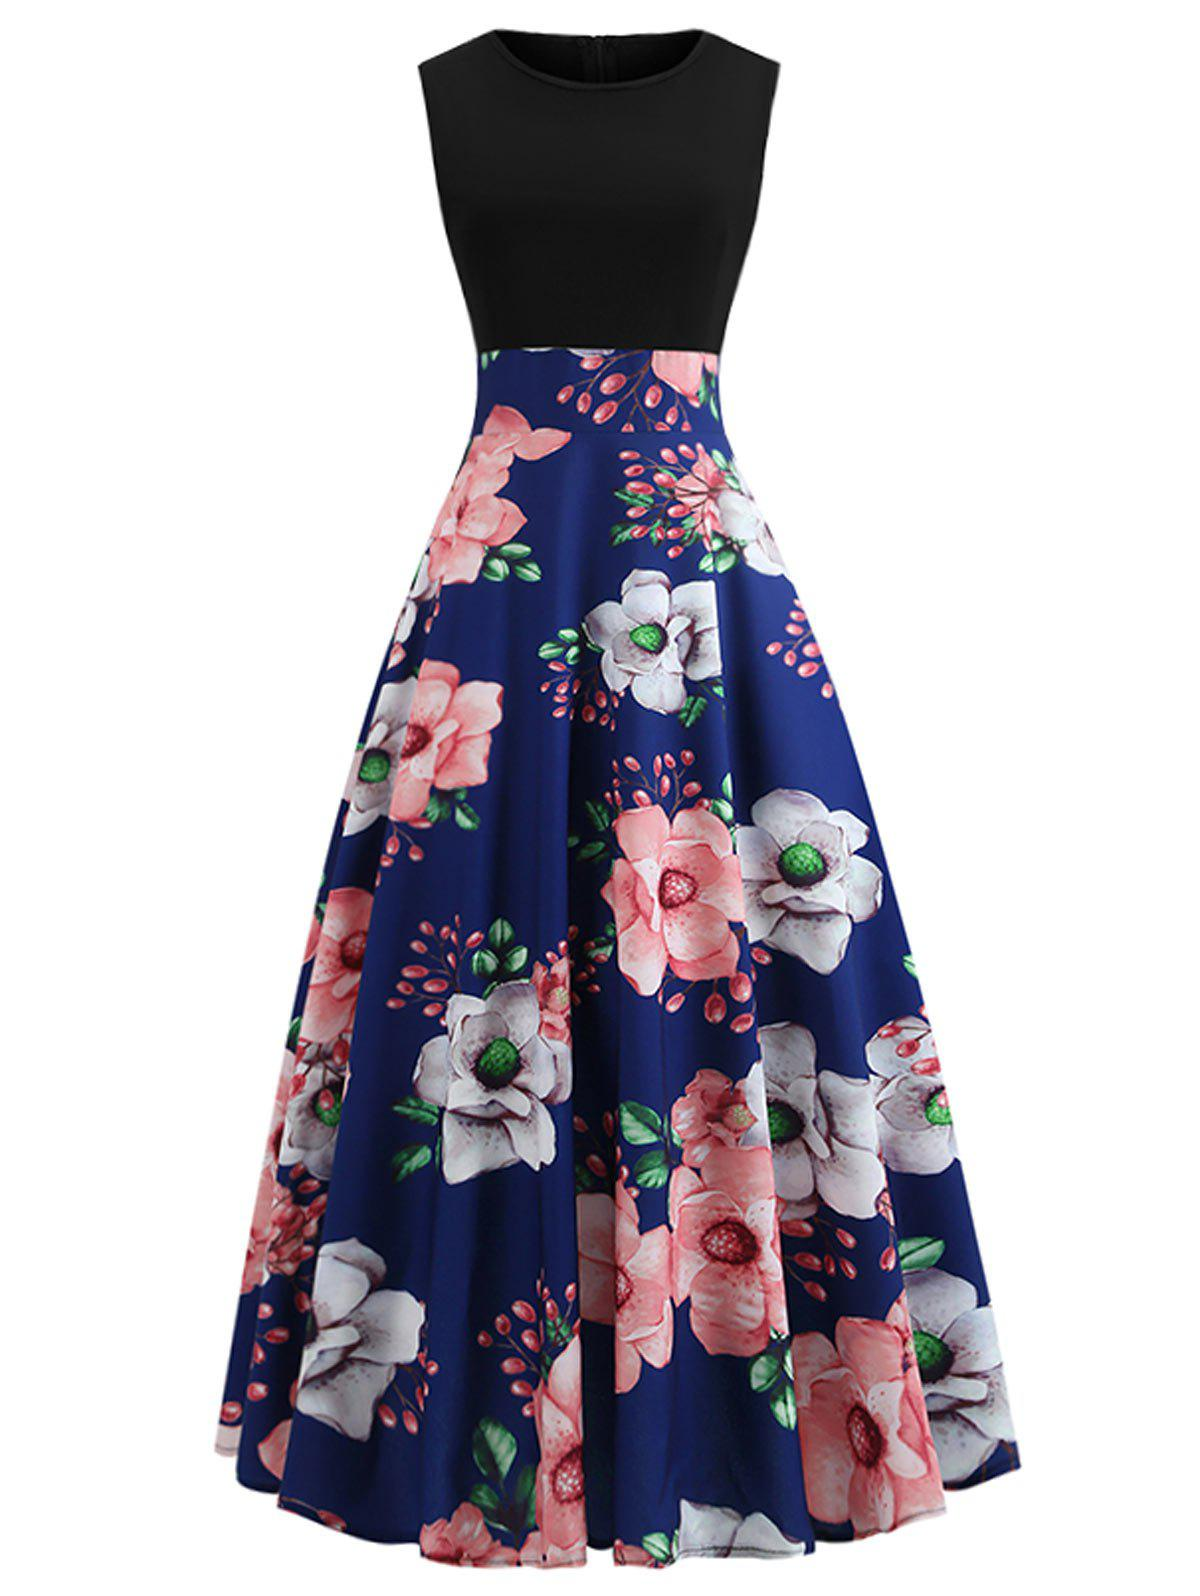 Sleeveless Floral Ankle Length Dress